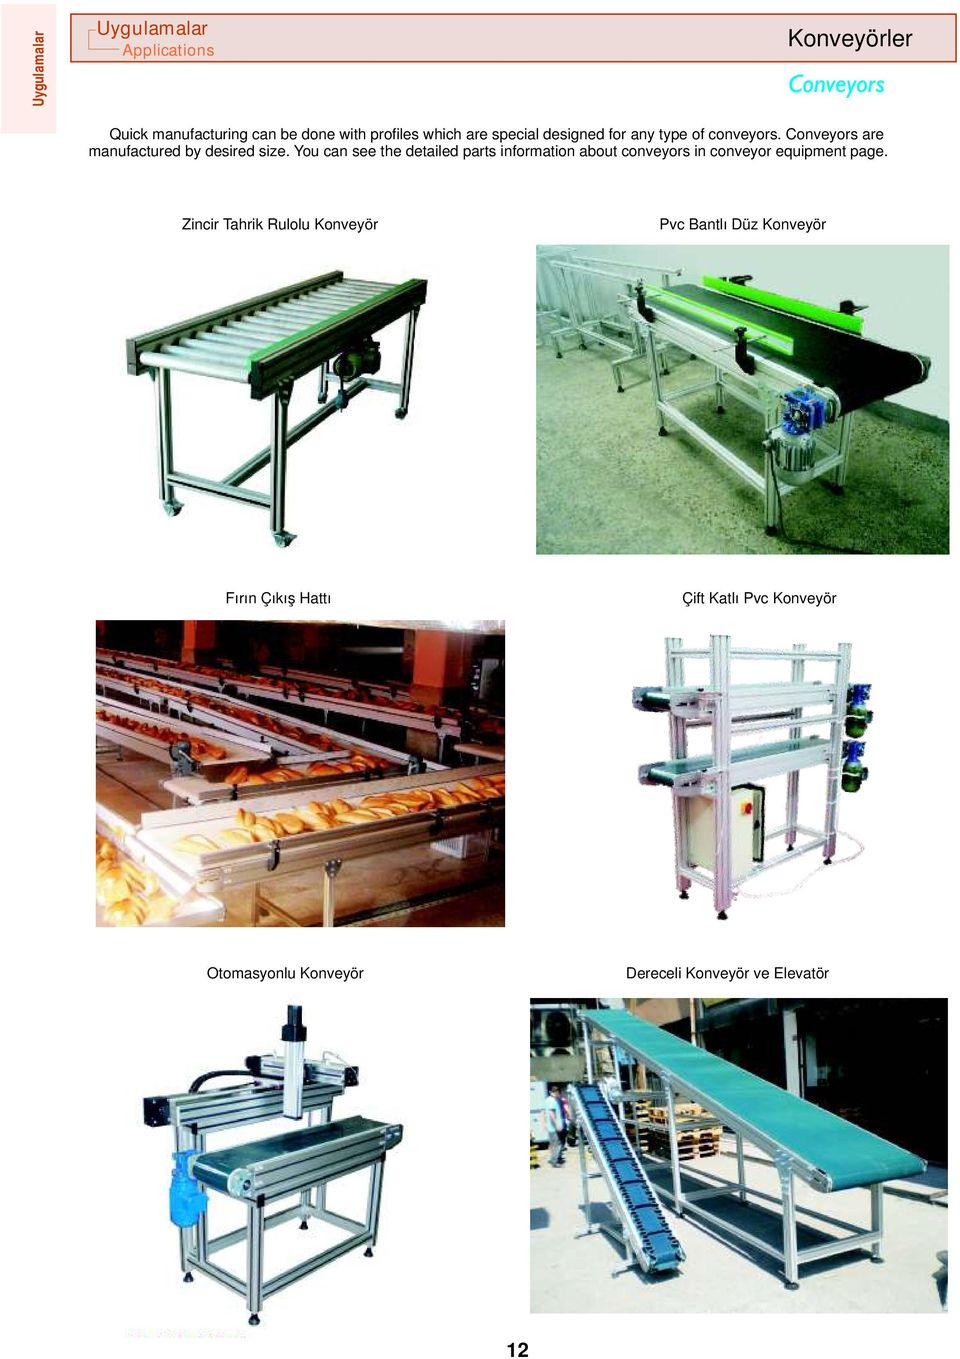 You can see the detailed parts information about conveyors in conveyor equipment page.